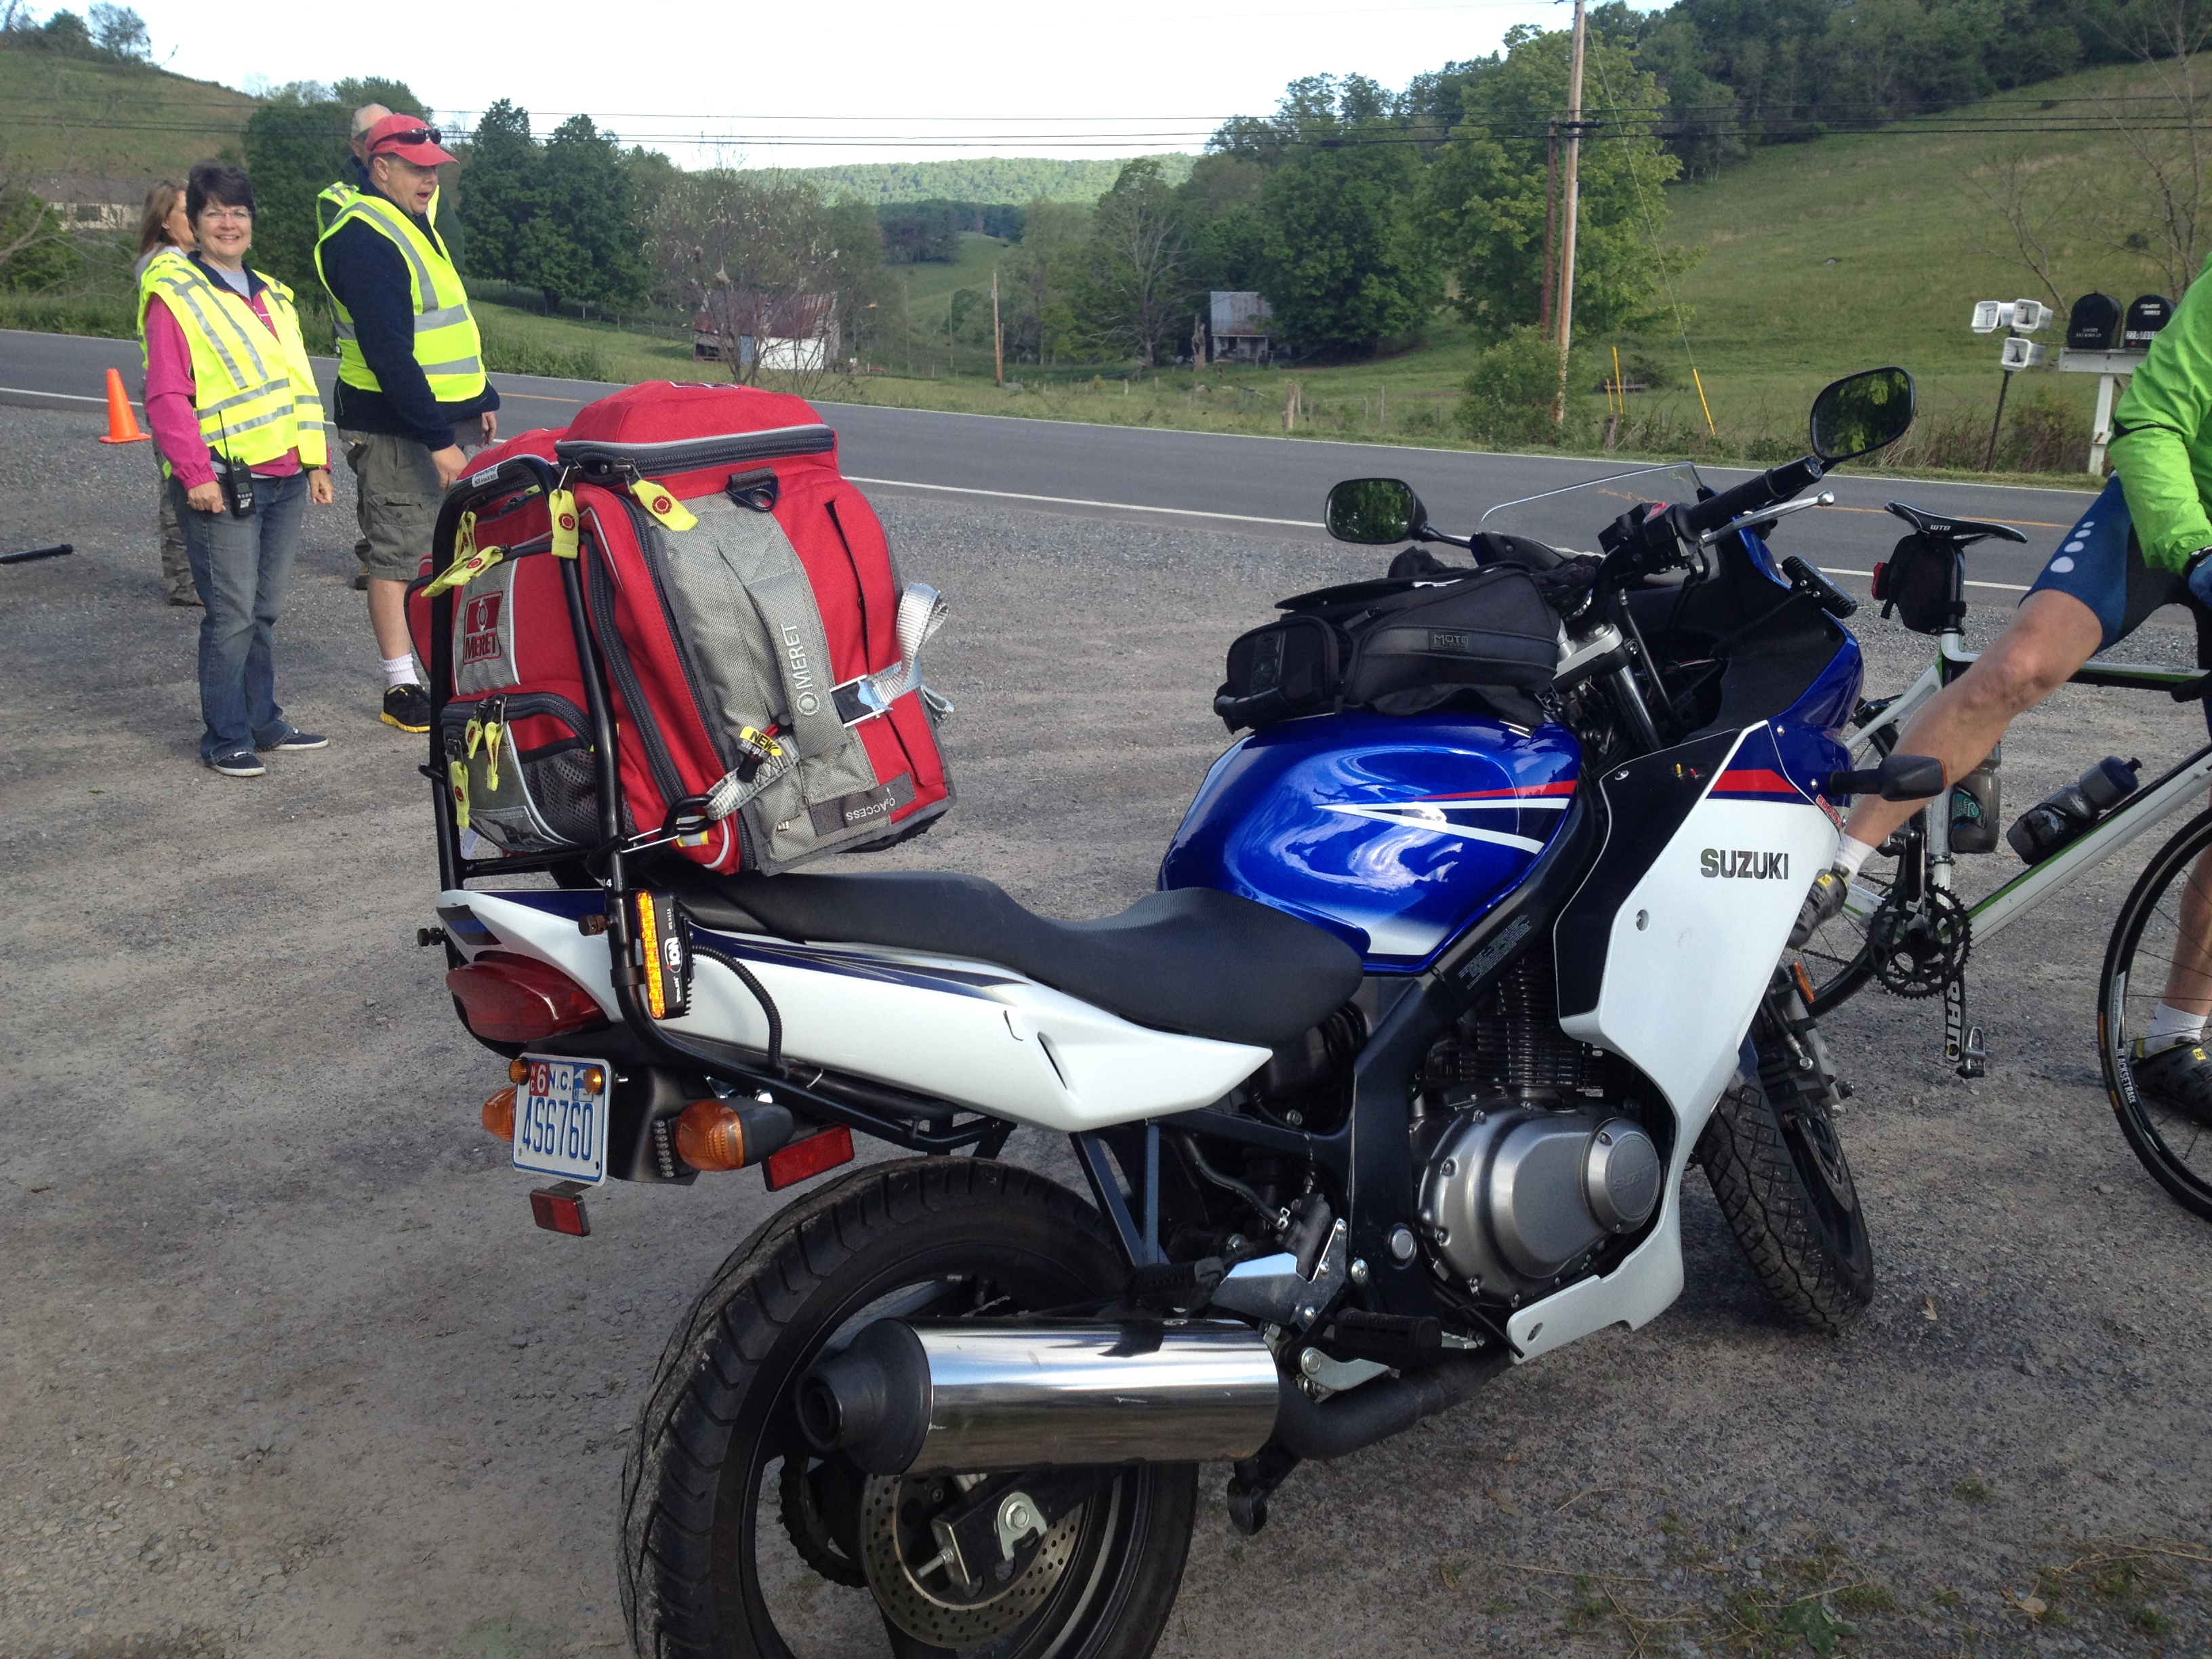 EMT Motorcycle while cycling in Virginia